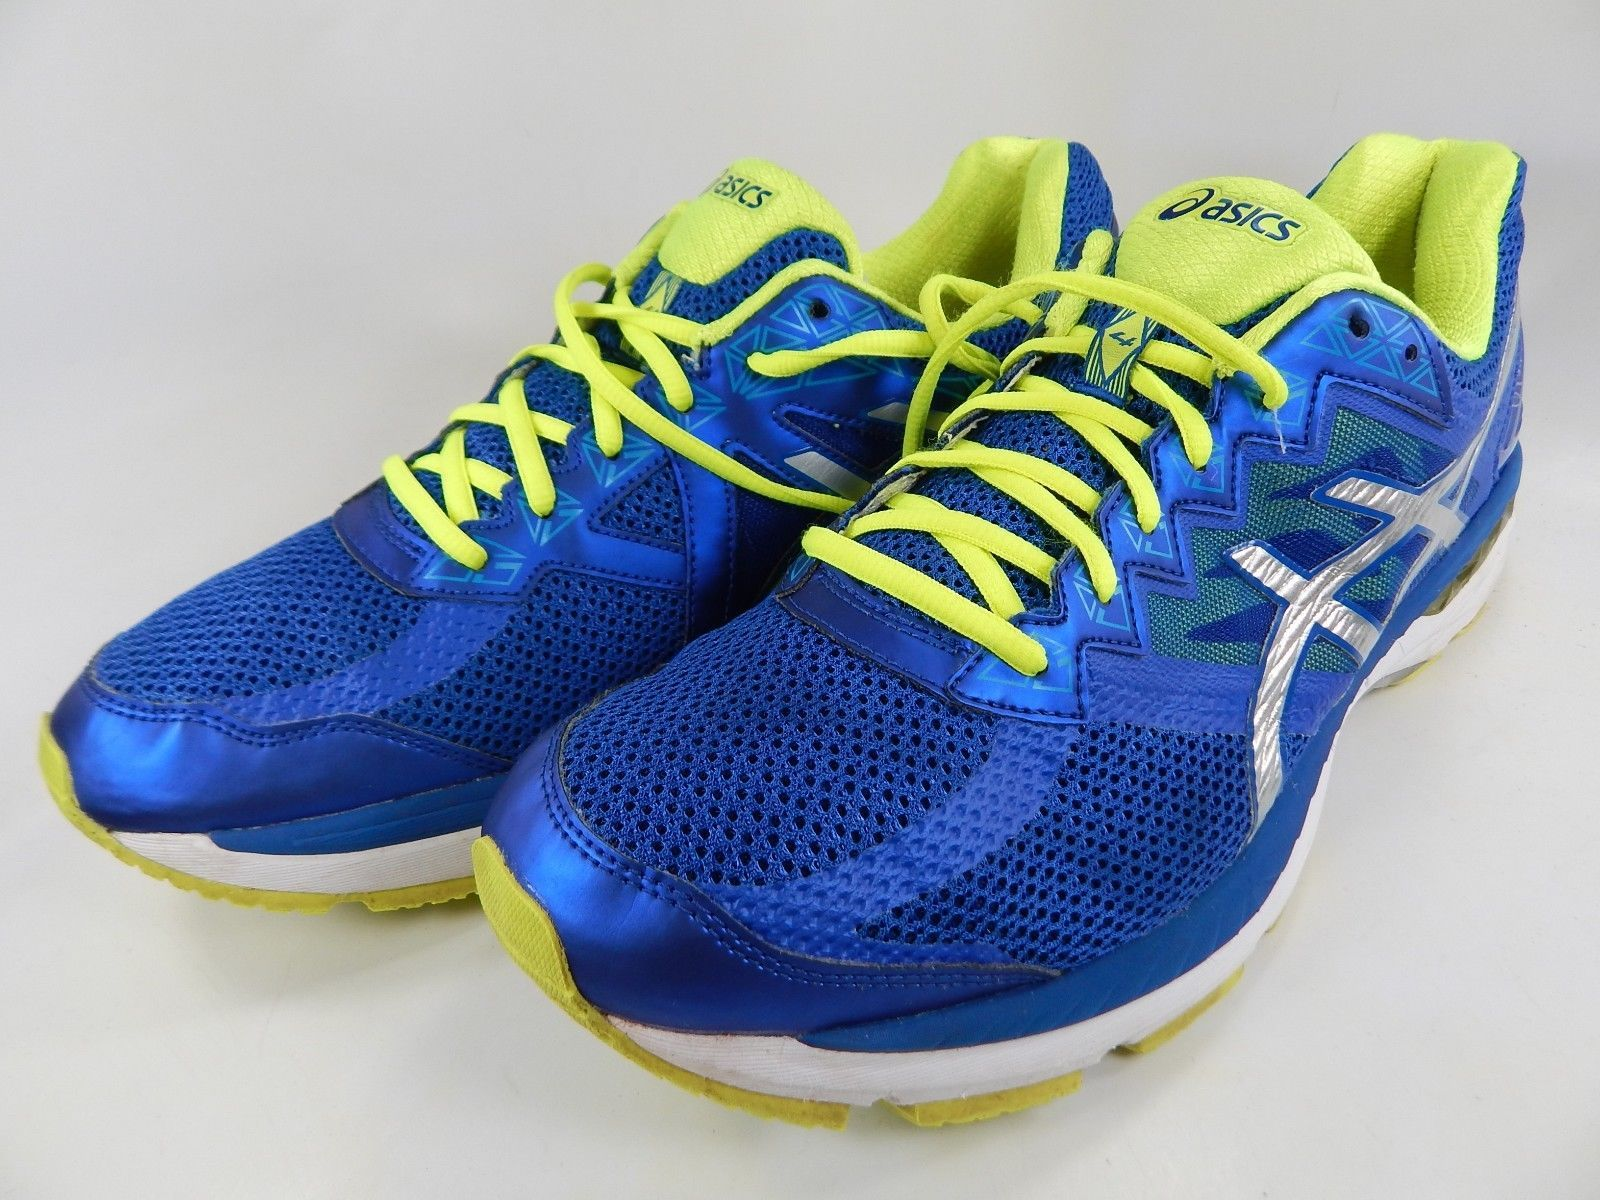 Asics GT 2000 v 4 Size US 12.5 M (D) EU 47 Men's Running Shoes Blue T606N